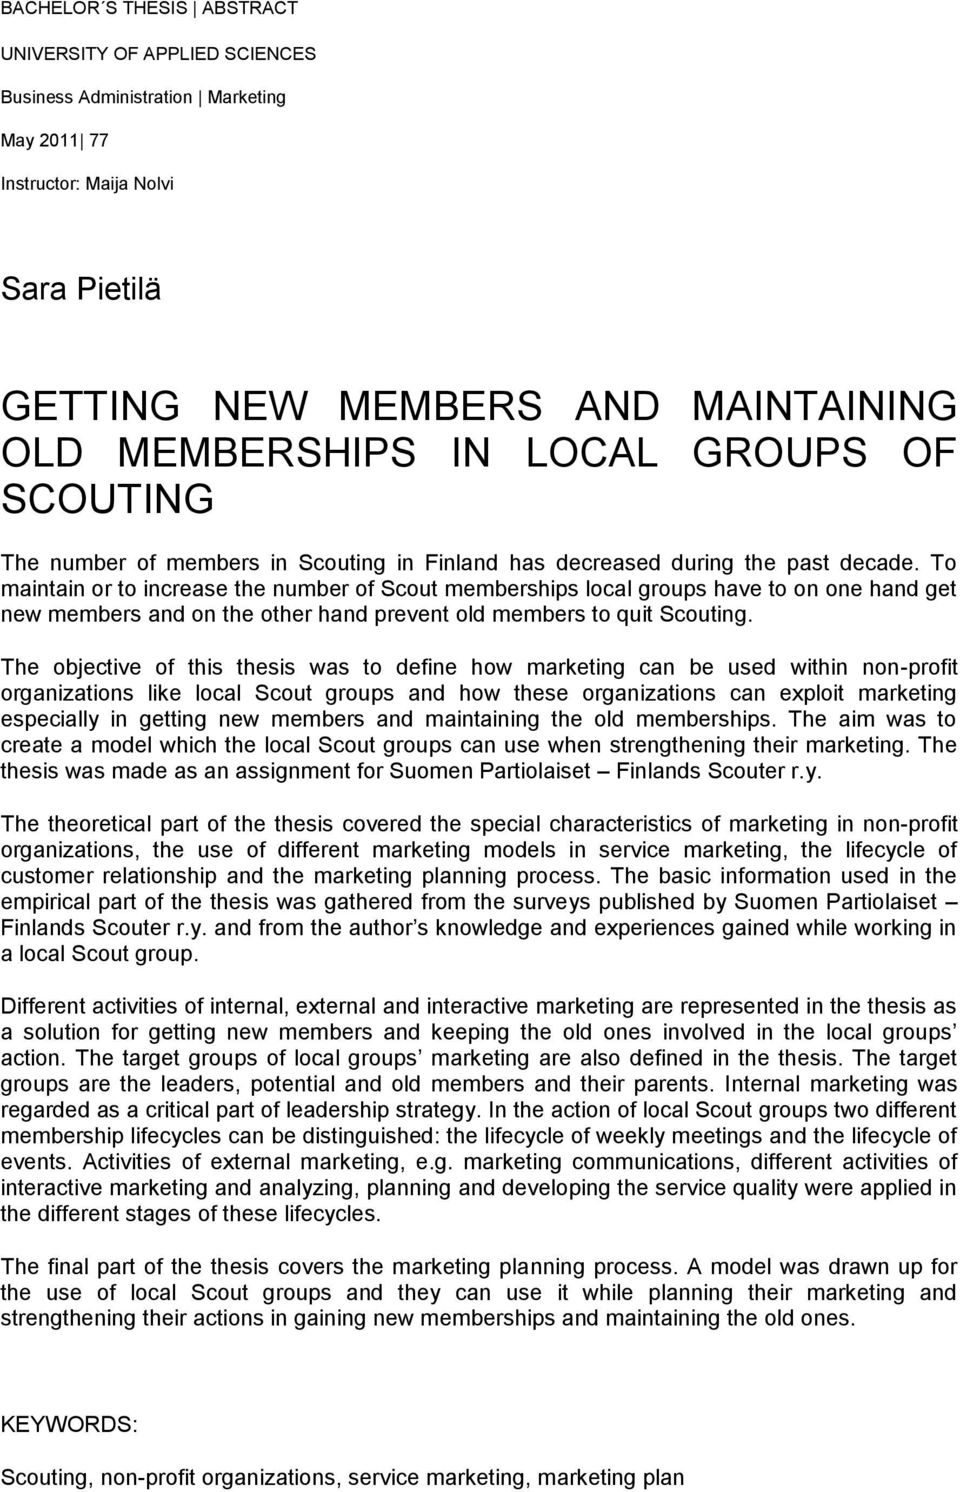 To maintain or to increase the number of Scout memberships local groups have to on one hand get new members and on the other hand prevent old members to quit Scouting.